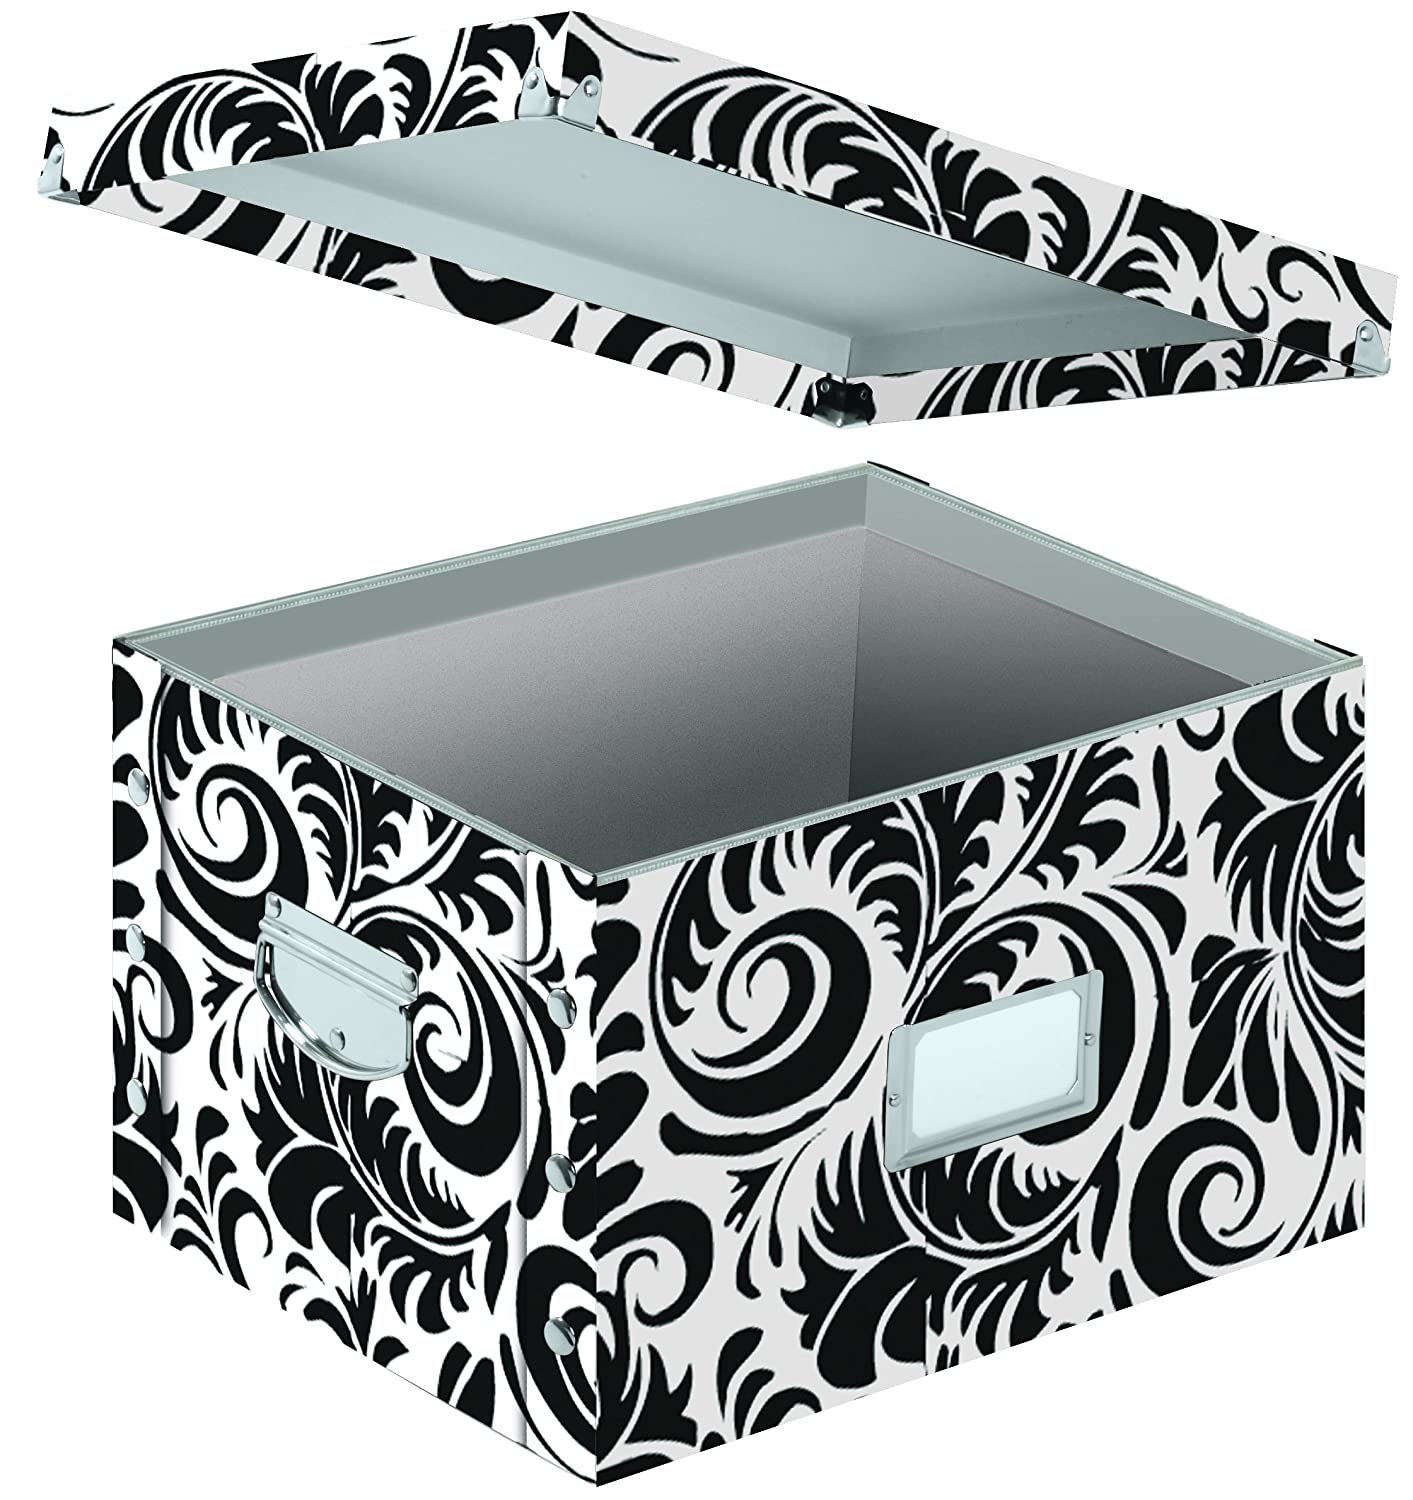 damask office accessories. letter and legal file box interior dimensions 95 x 1475 1225 inches black white scroll design sns01835 filing crates office products damask accessories